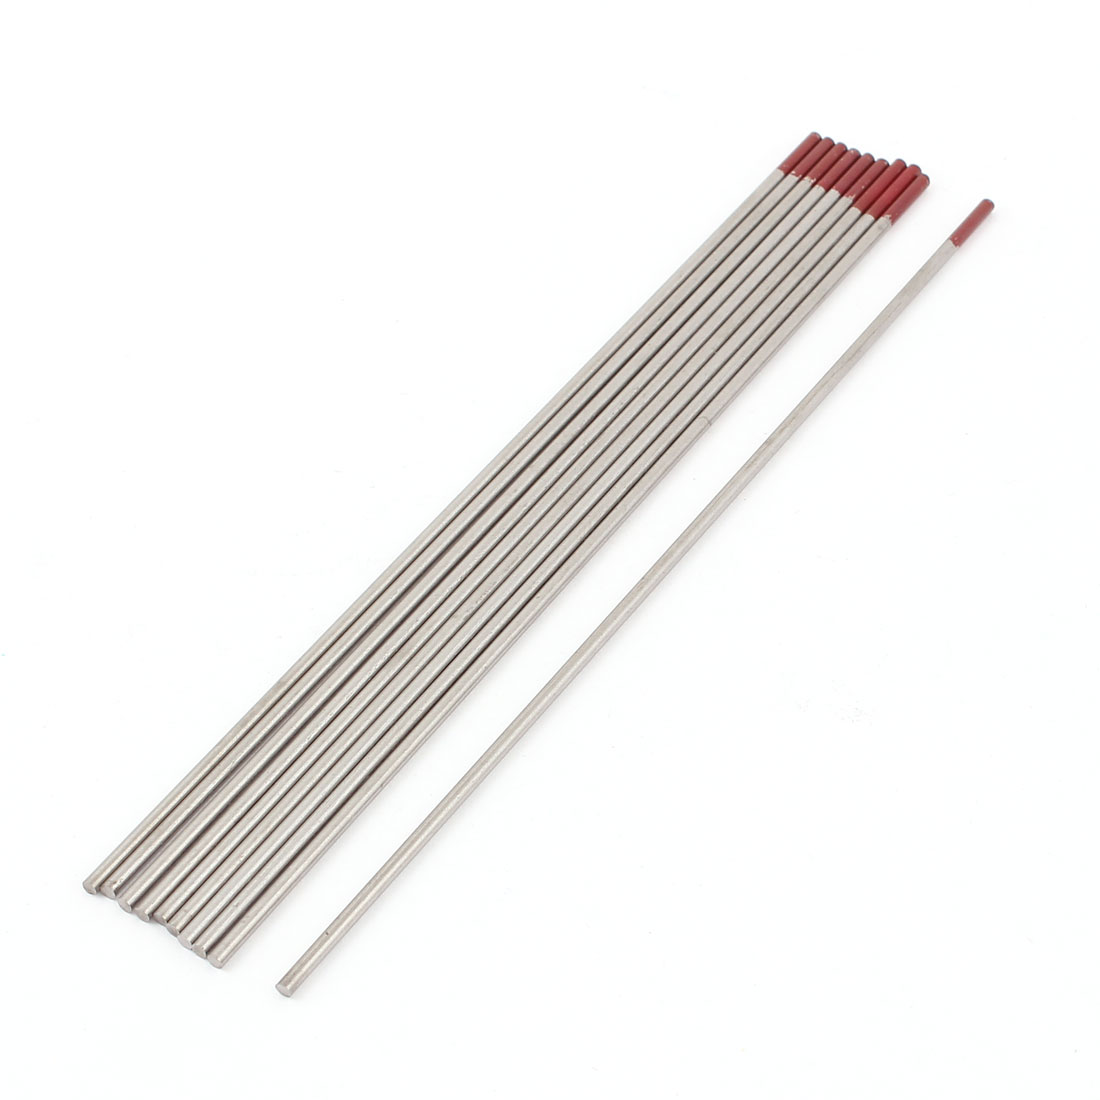 "10 Pcs TIG Welder 2% Thoriated Tungsten Electrodes WT20 2/25"" x 6"""